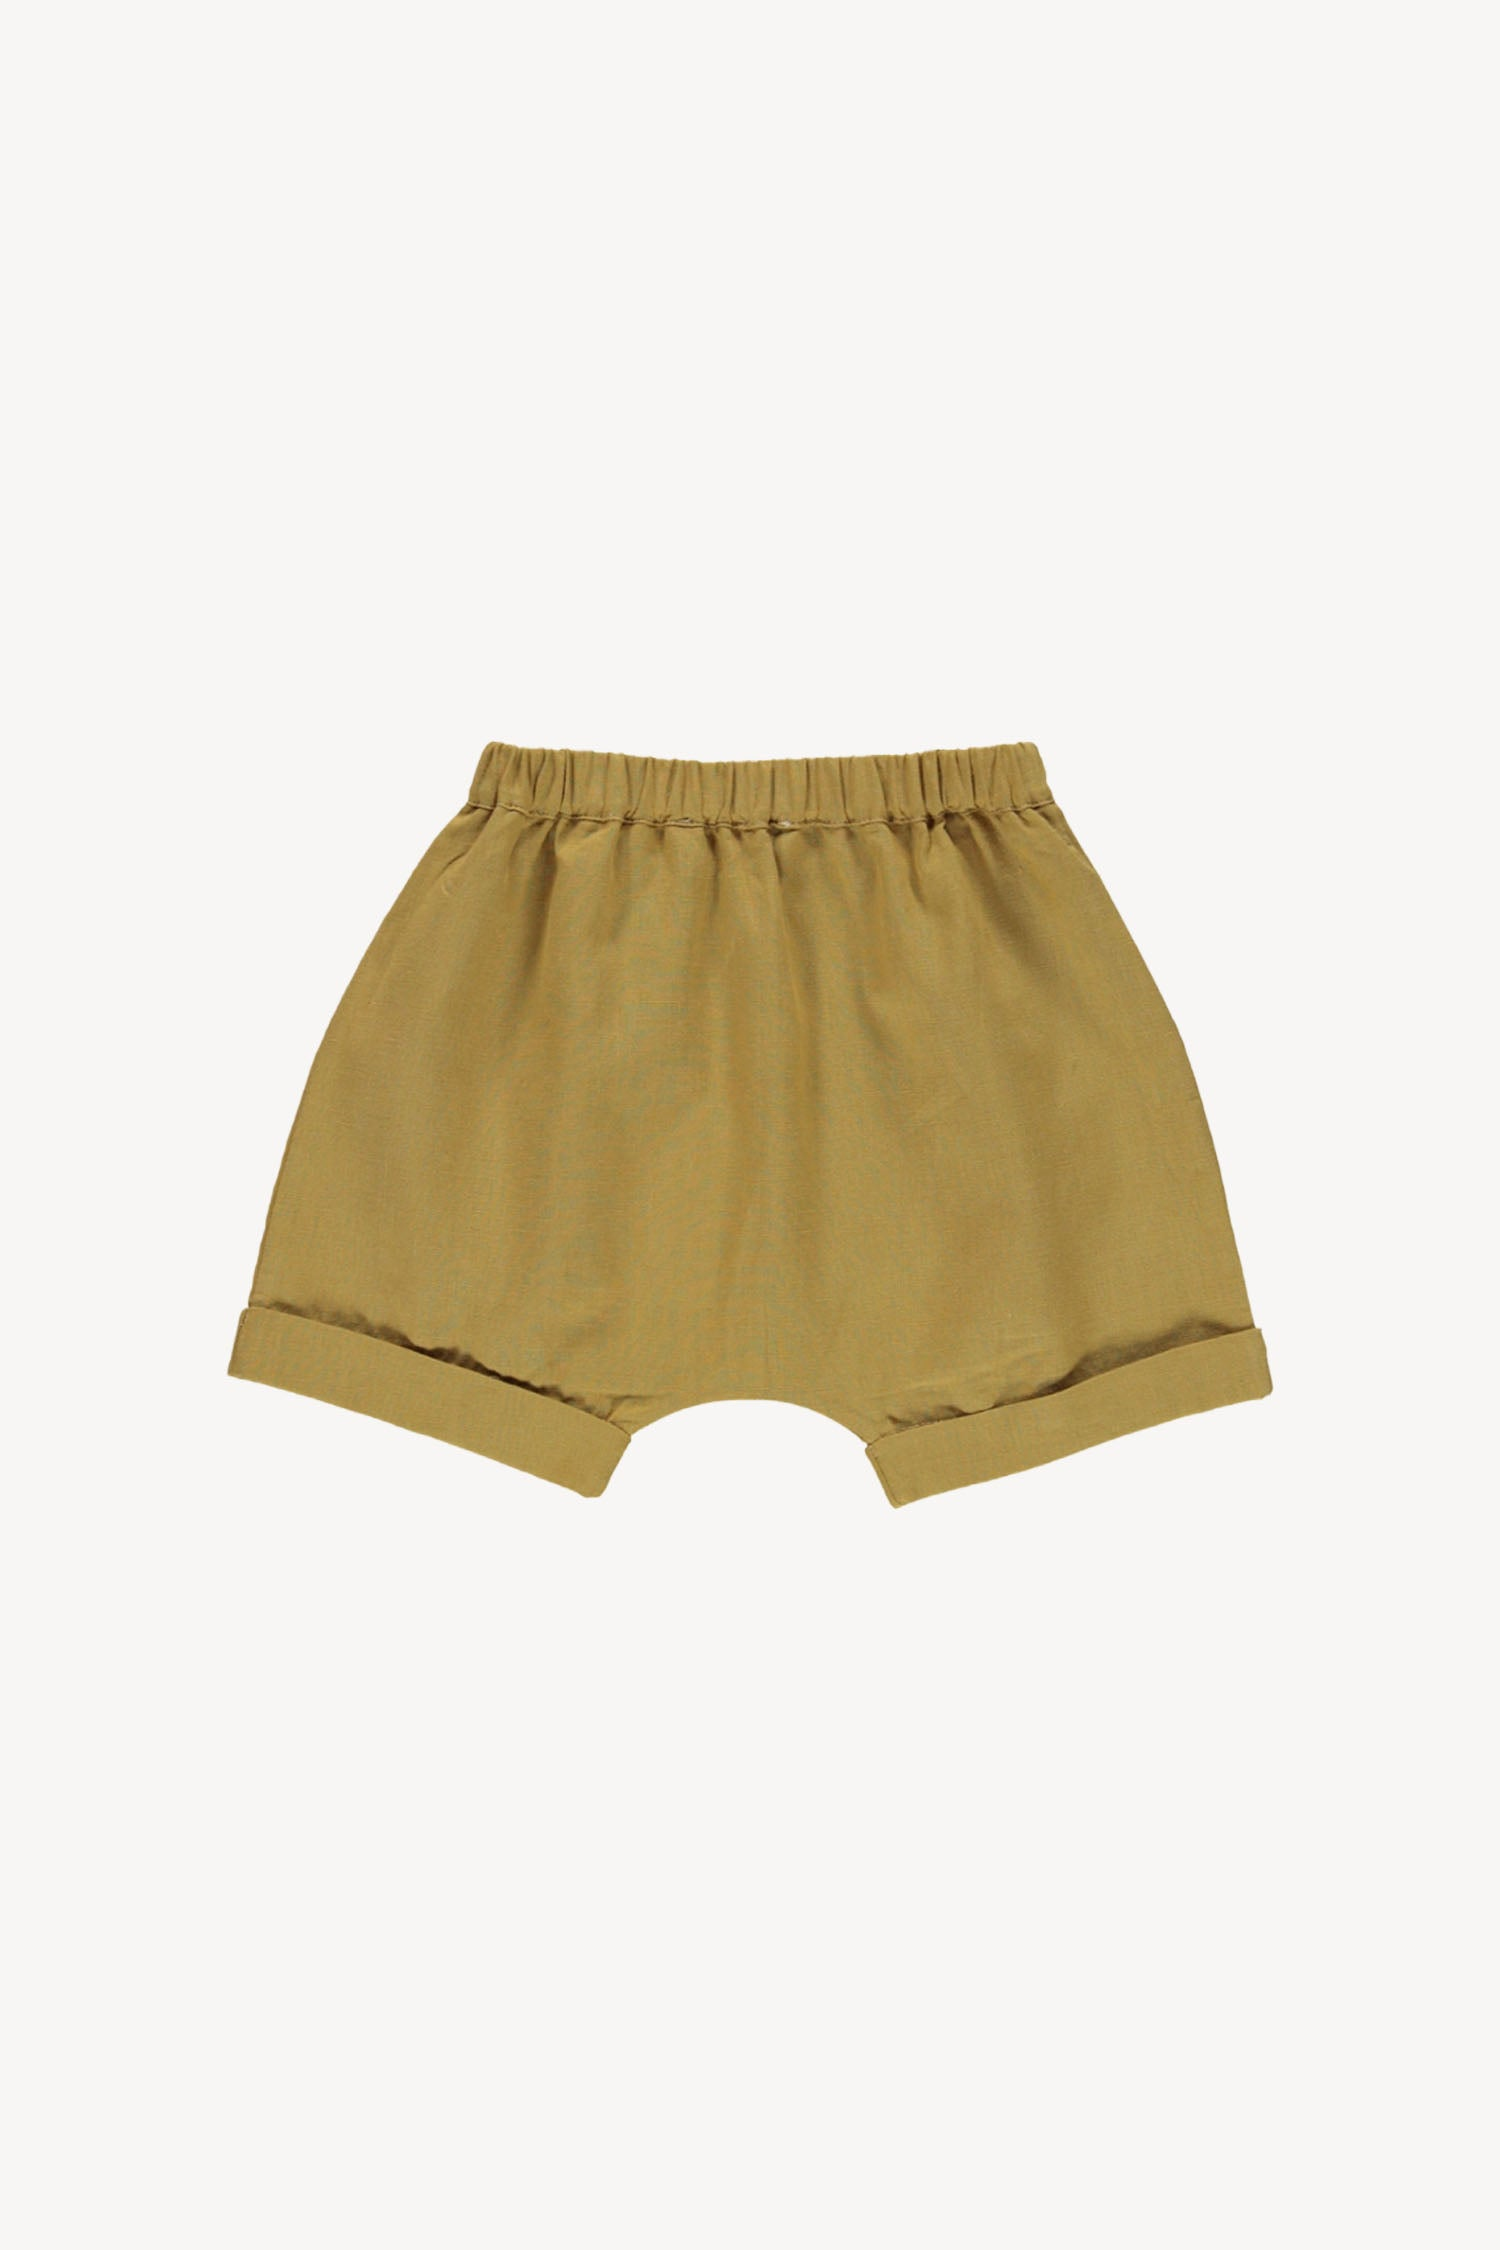 Fin and Vince - Short Trouser (Toffee) - Last 10/11